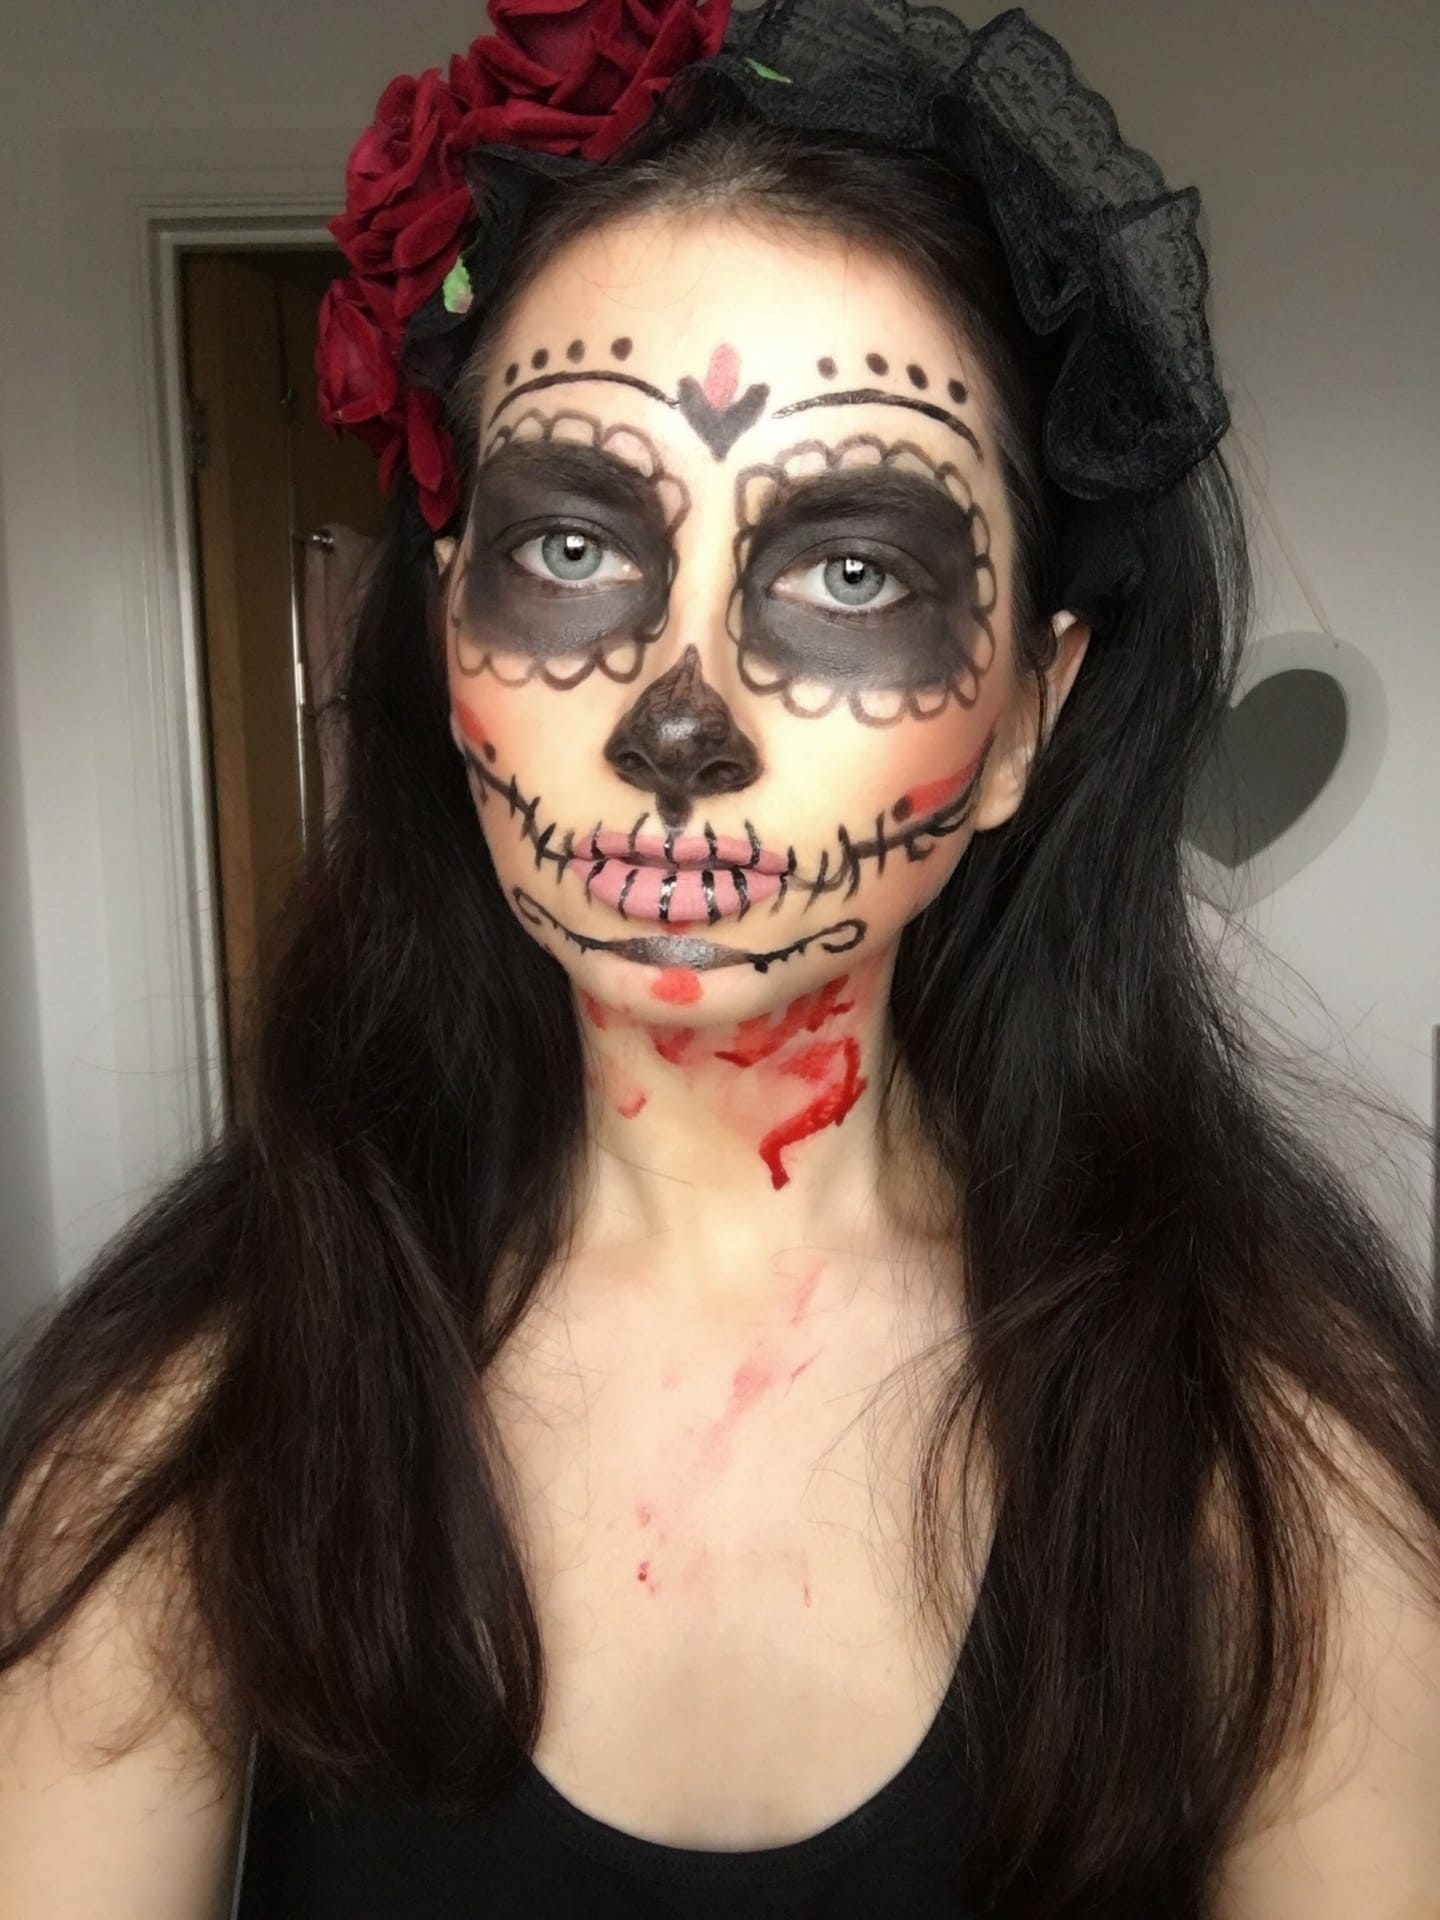 Day of the Dead Sugar Skull Halloween Makeup - Check out these 40 cute and creative Halloween costume ideas for women, couples, families, and friends! #halloween #halloweencostumes #halloweencostumeideas